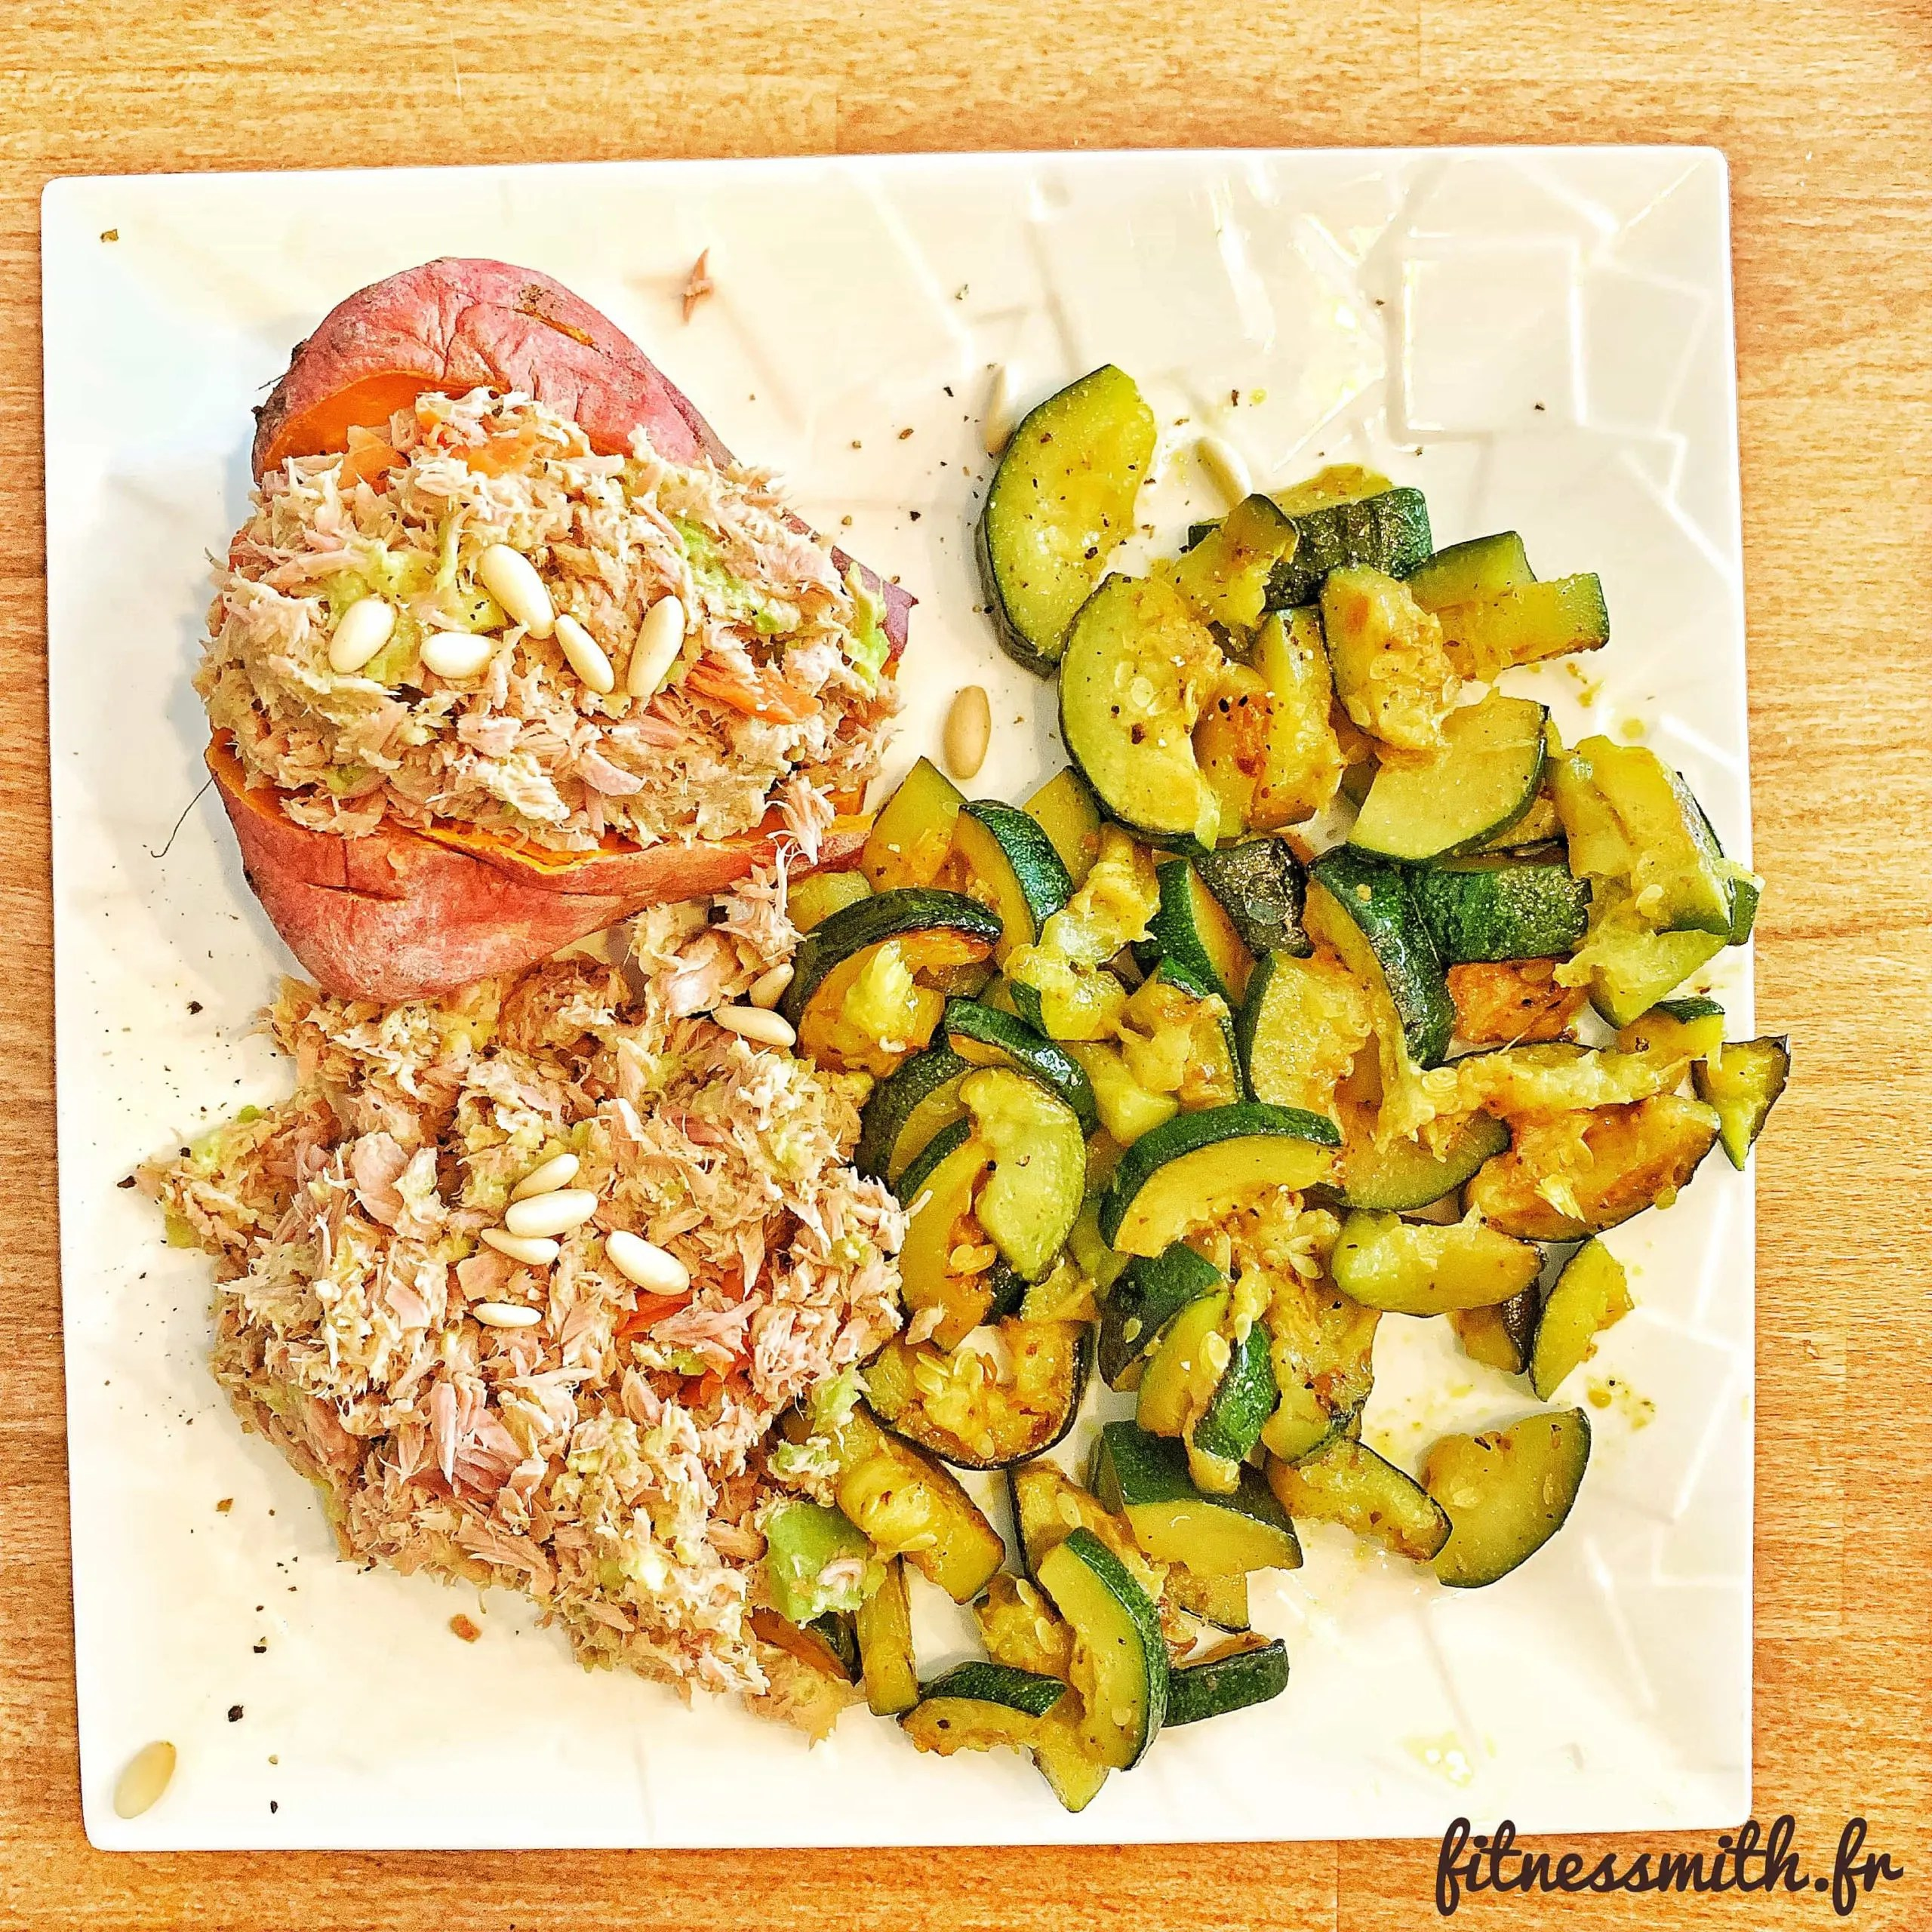 Recette fitness : patate douce farcie